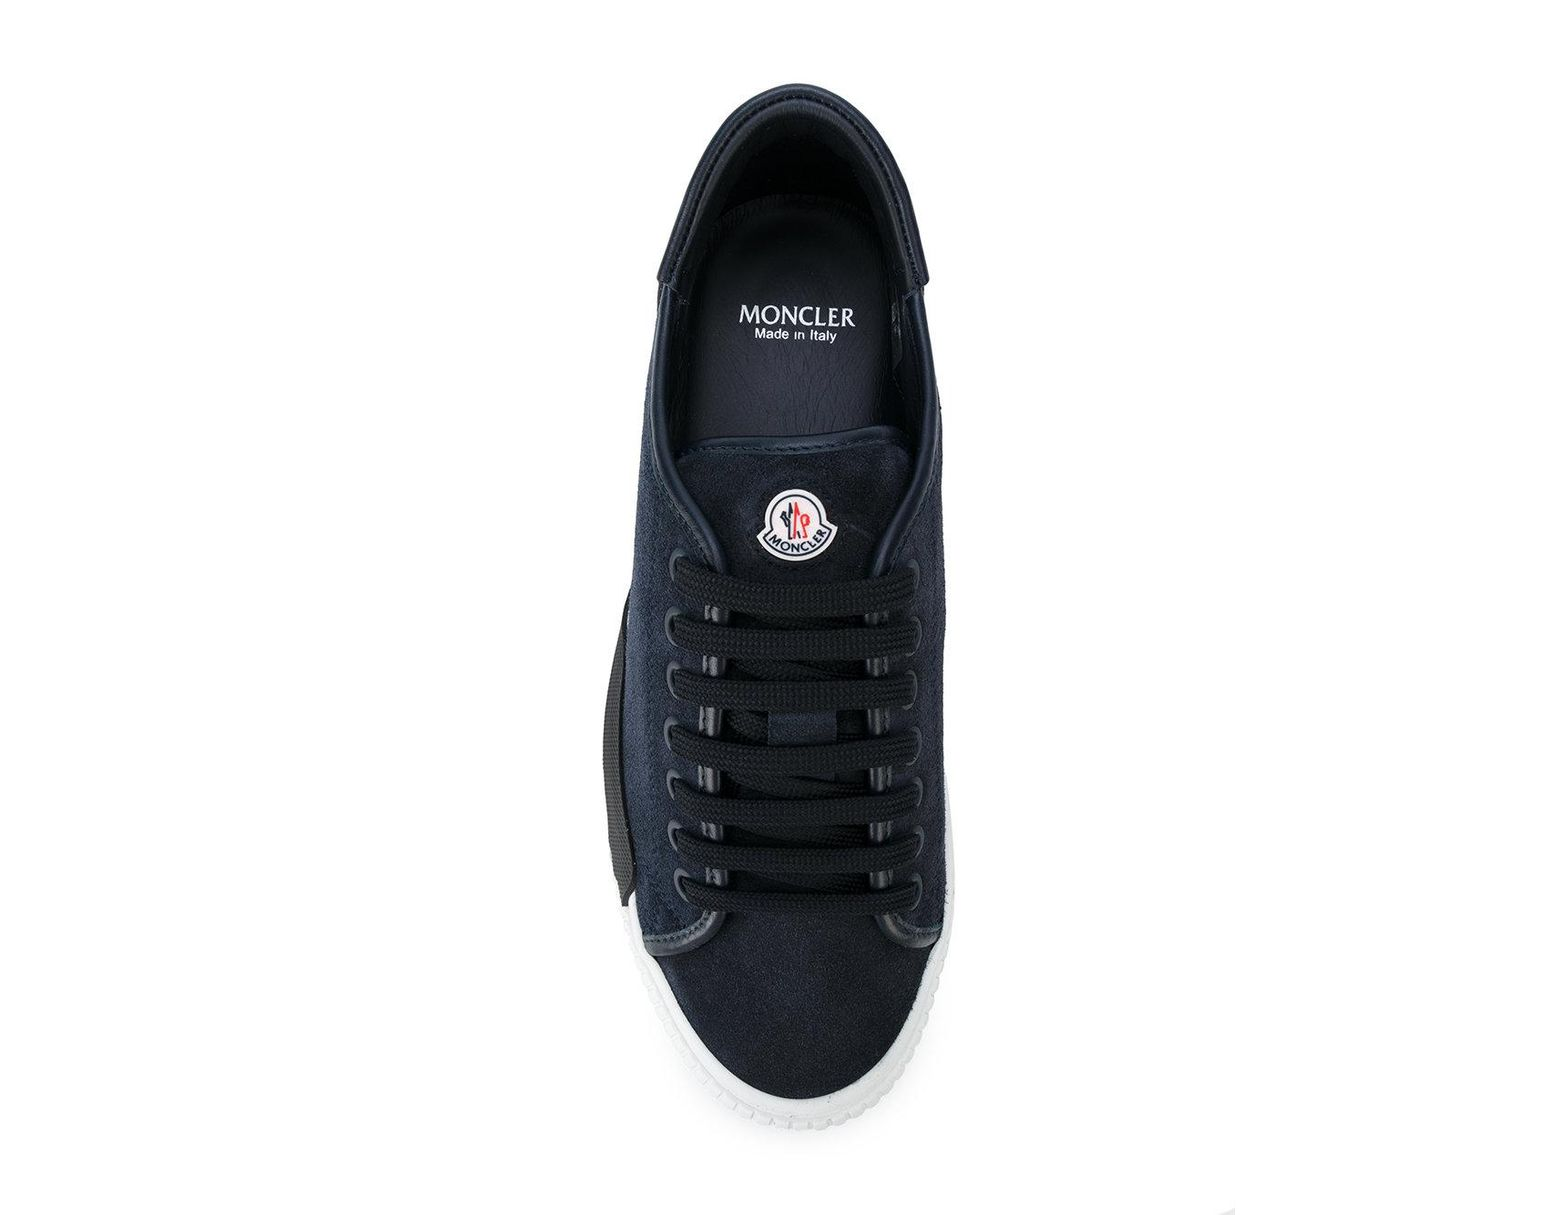 b44b8f45c8116 Moncler Lace-up Platform Sneakers in Blue for Men - Lyst